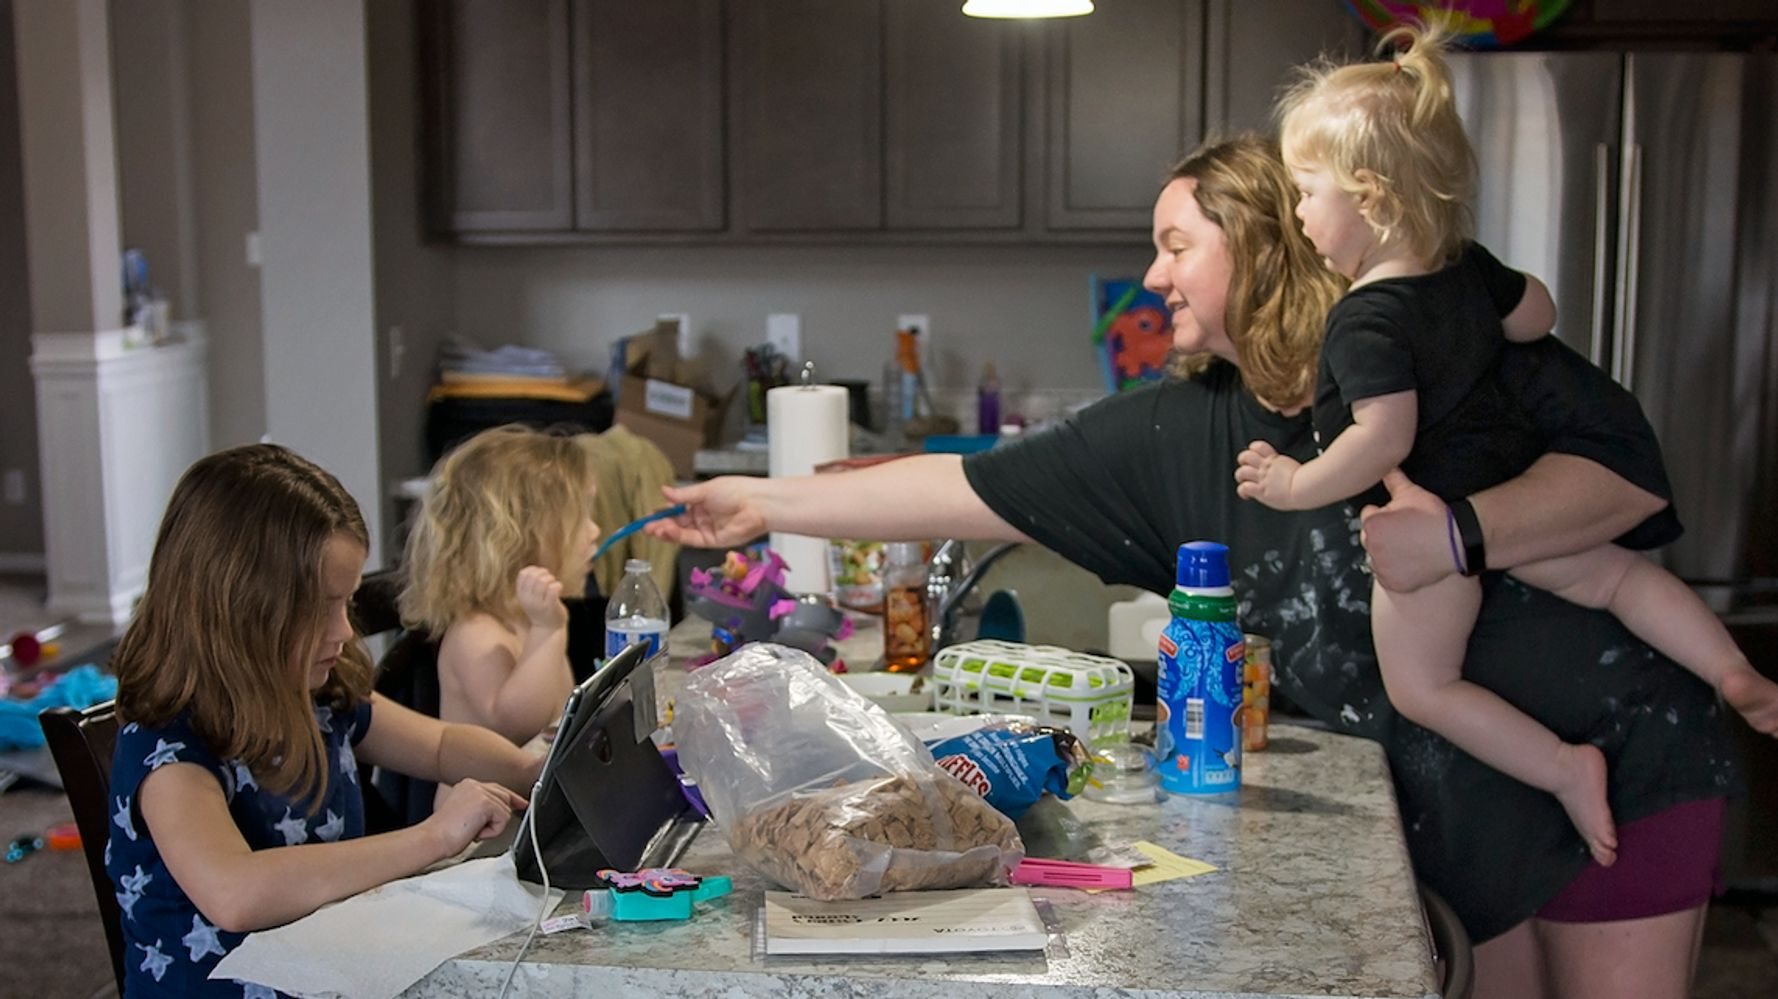 'Whatever Happened To My Privacy?' Honest Photos Capture The Reality Of Being A Mum